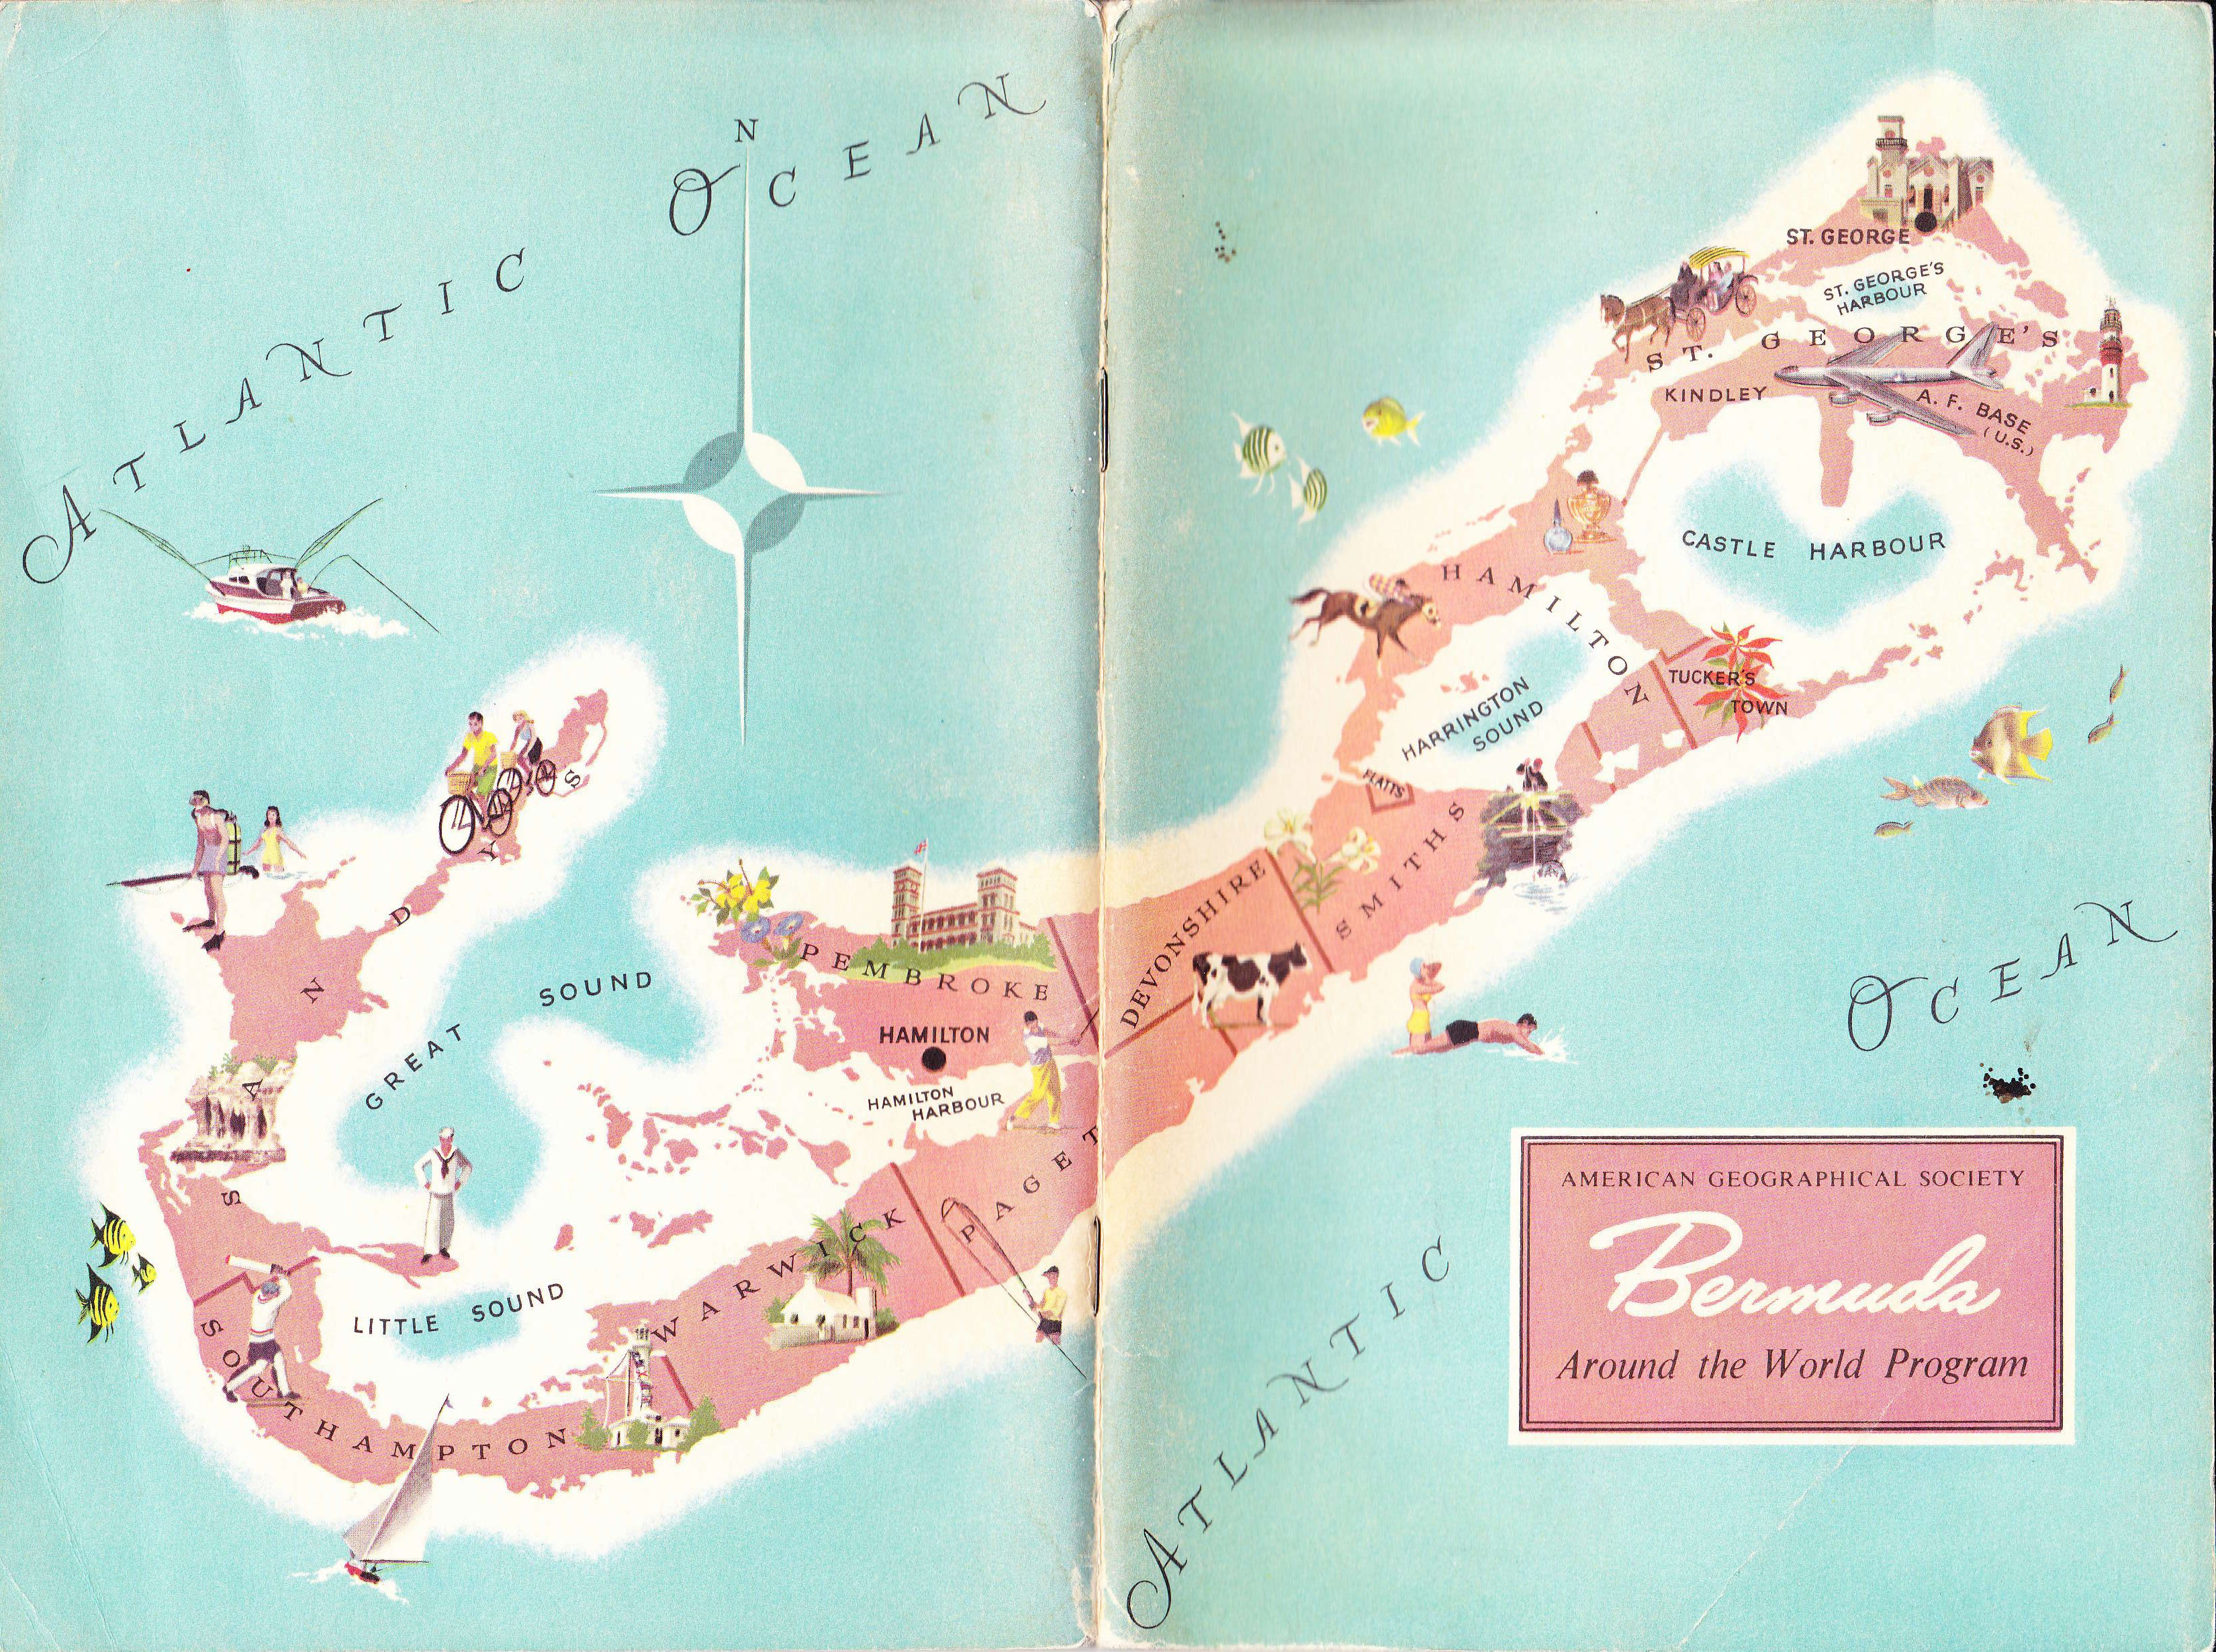 Old Map of Bermuda- can\'t wait to go here in June! | Wayfaring Ways ...